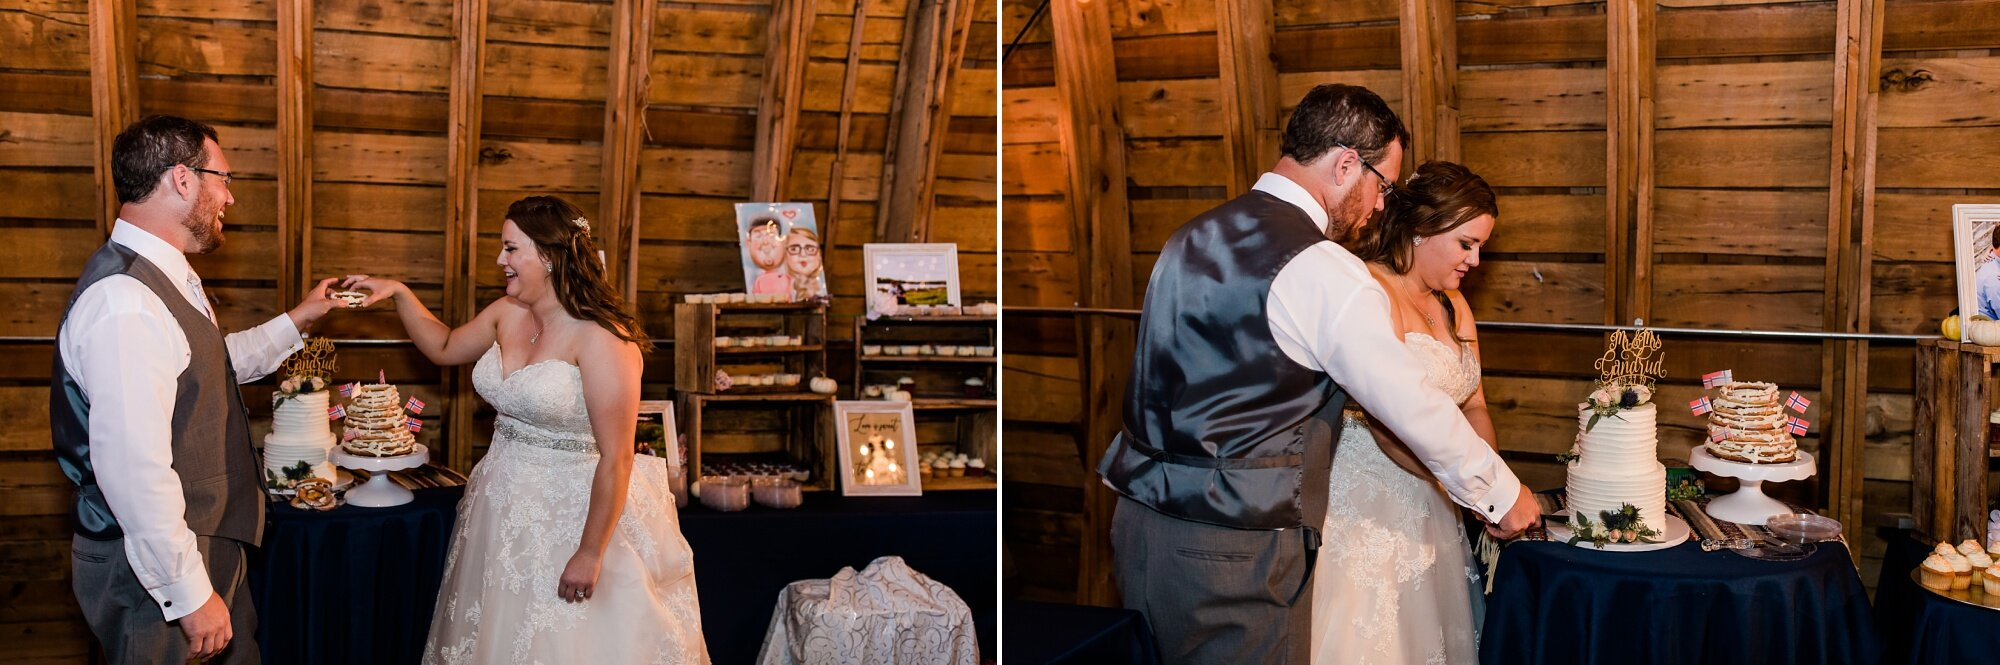 Amber Langerud Photography_Lake Park Minnesota, Outdoor Barn Wedding With Horses_7018.jpg